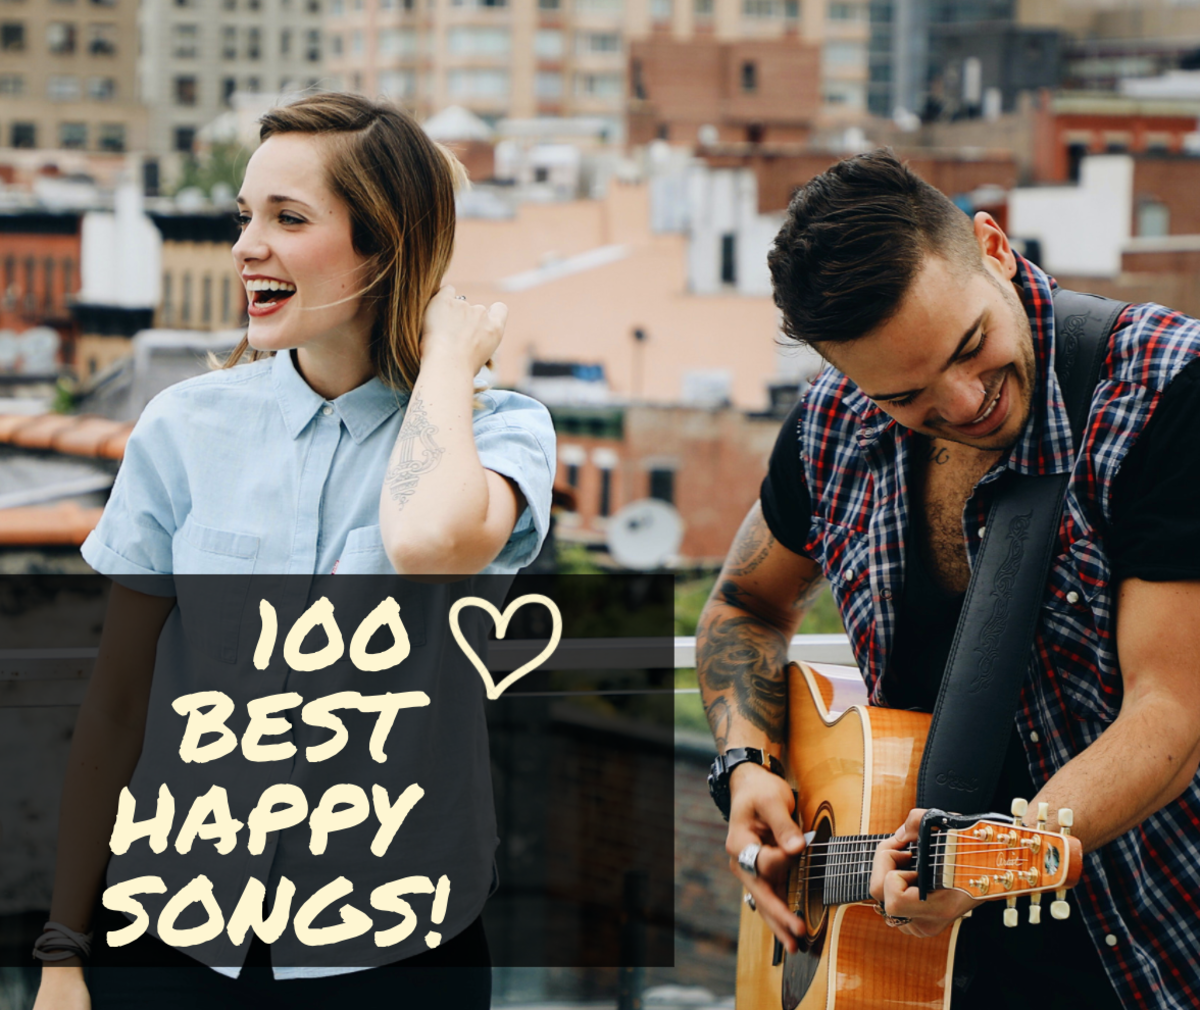 These happy songs will help you stay positive during life's greatest challenges.